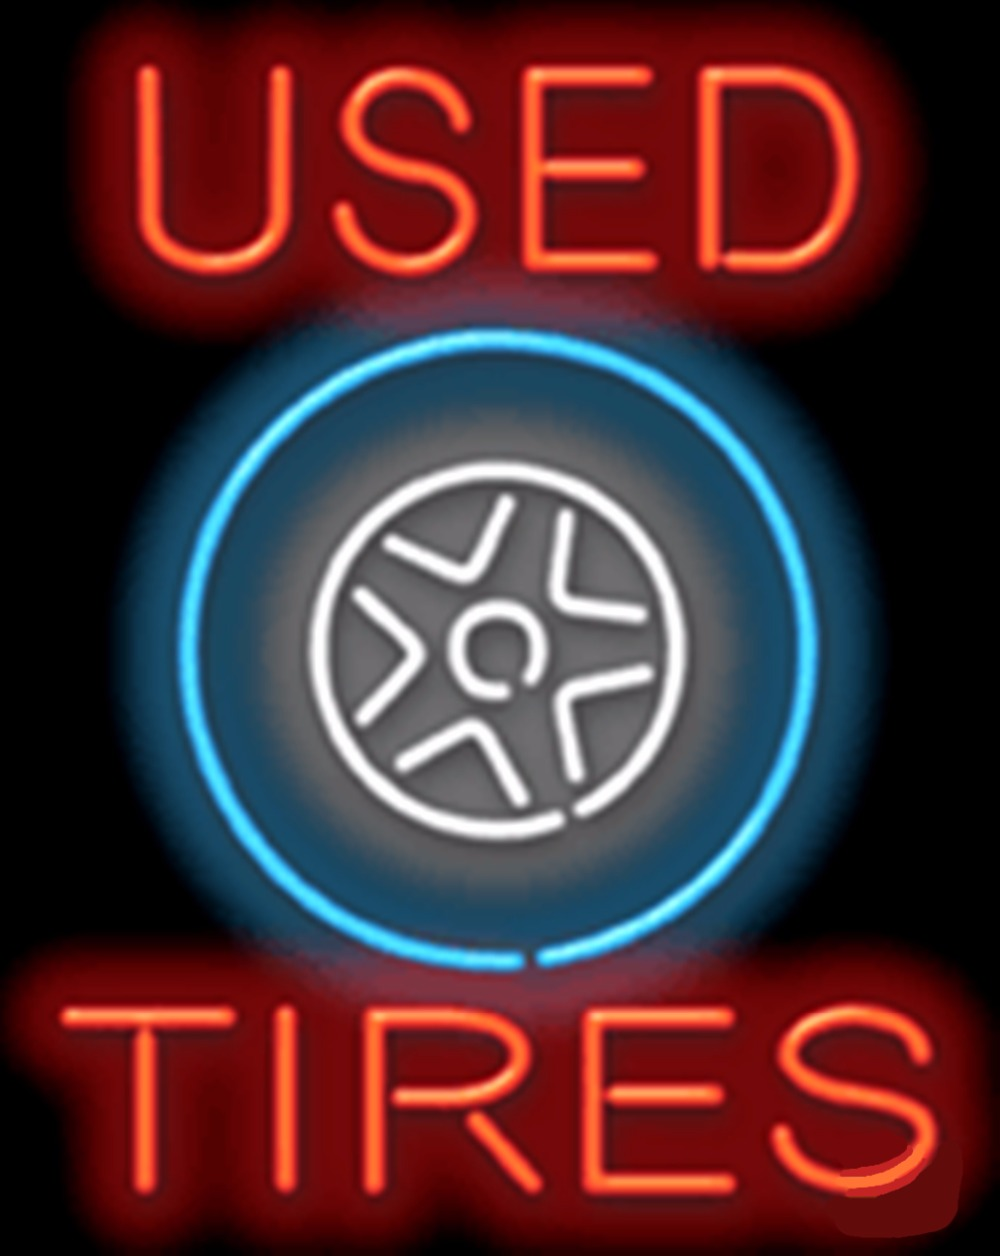 Used Tires Trucks Amp Suvs Car Glass Tube Car Neon Sign